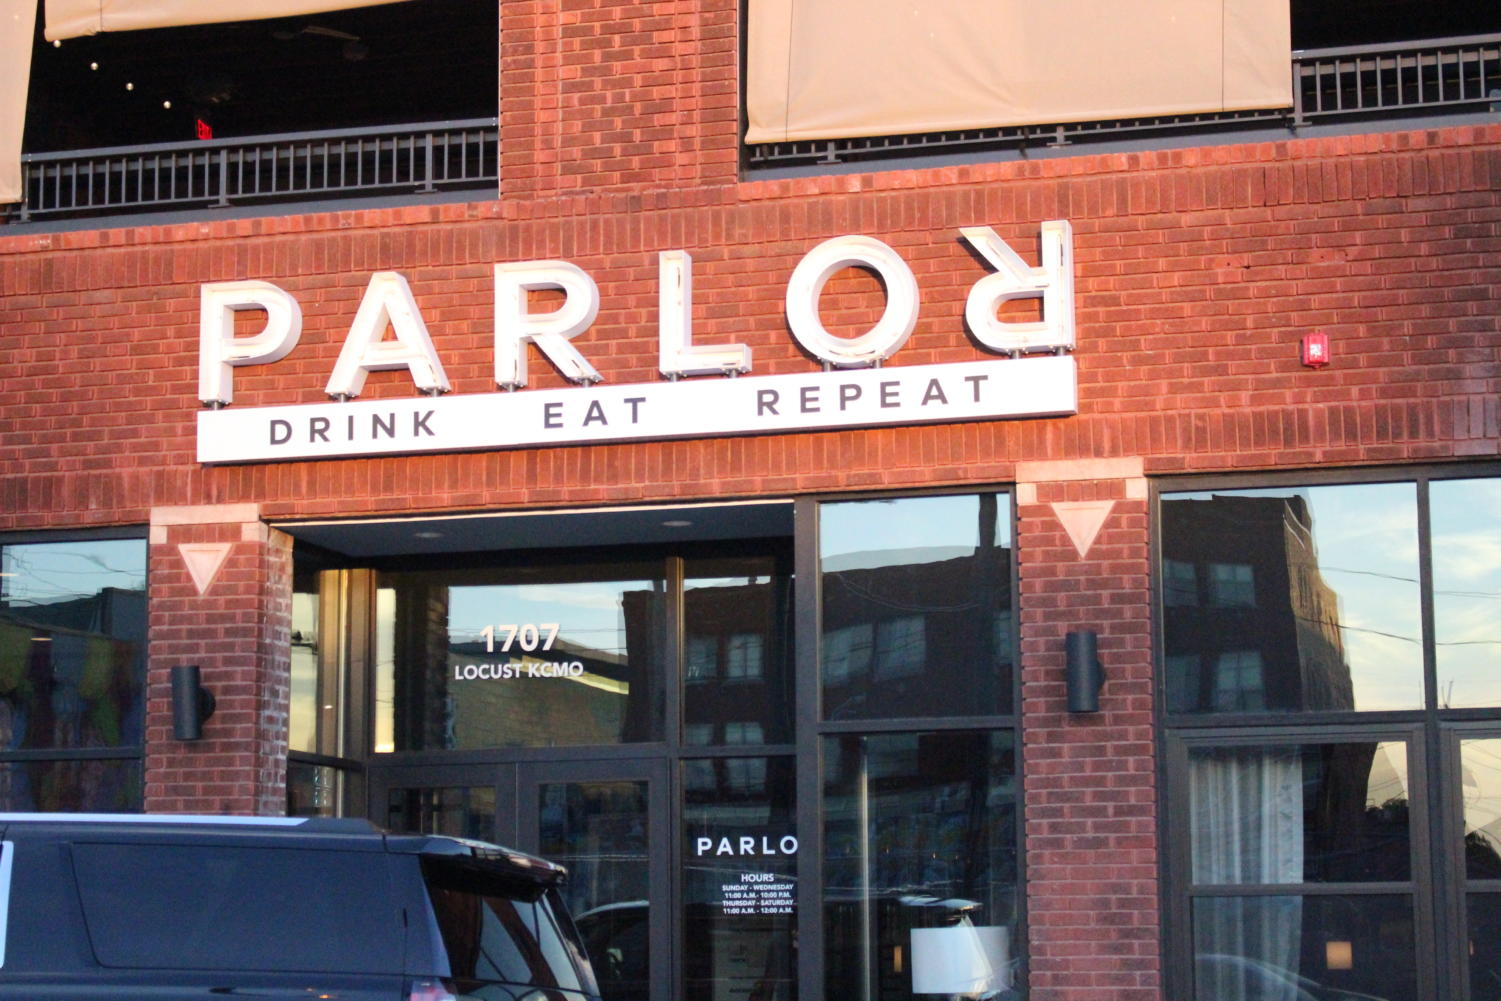 Parlor is located in The Crossroads and offers indoor and outdoor seating options.